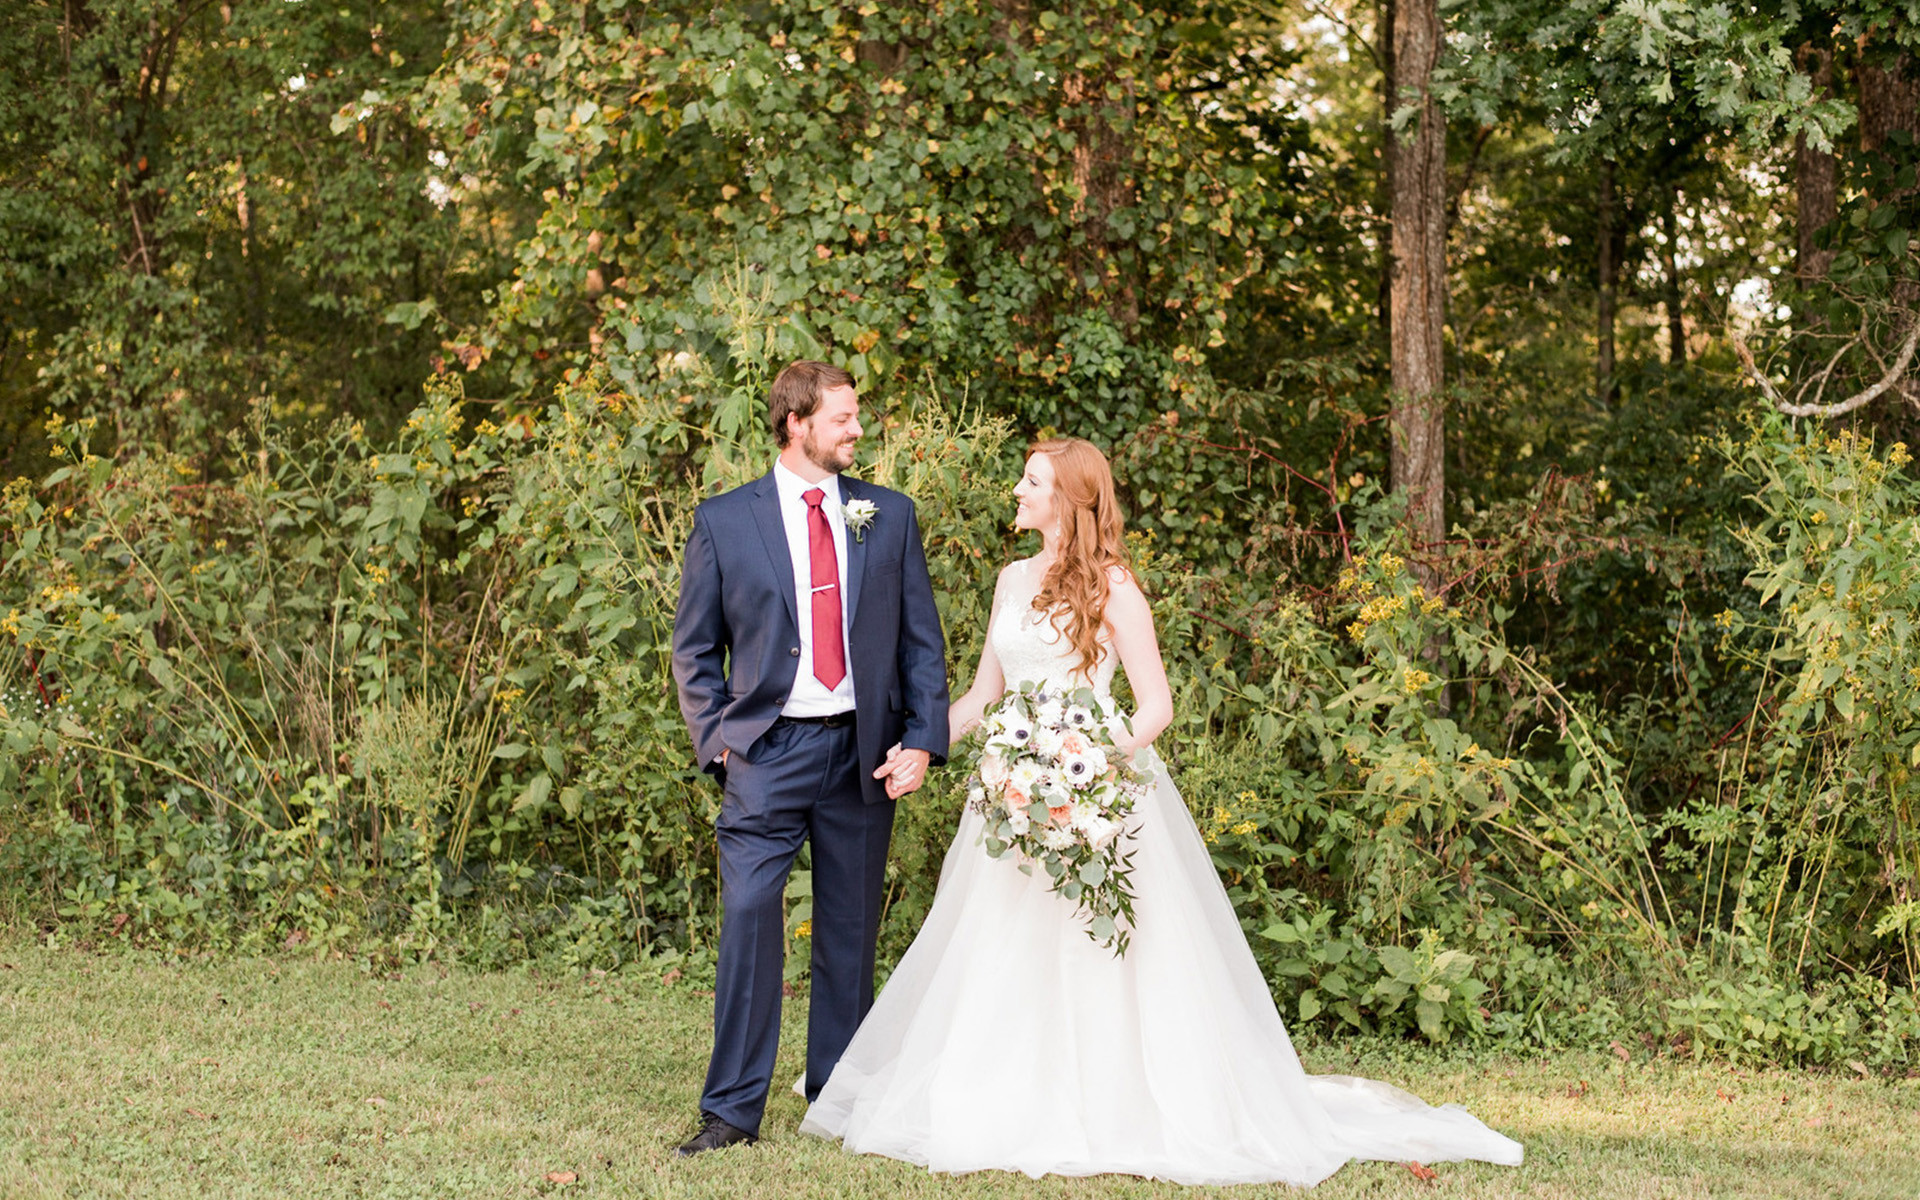 Summer Transitions to Fall During this Fall Equinox Inspired Wedding